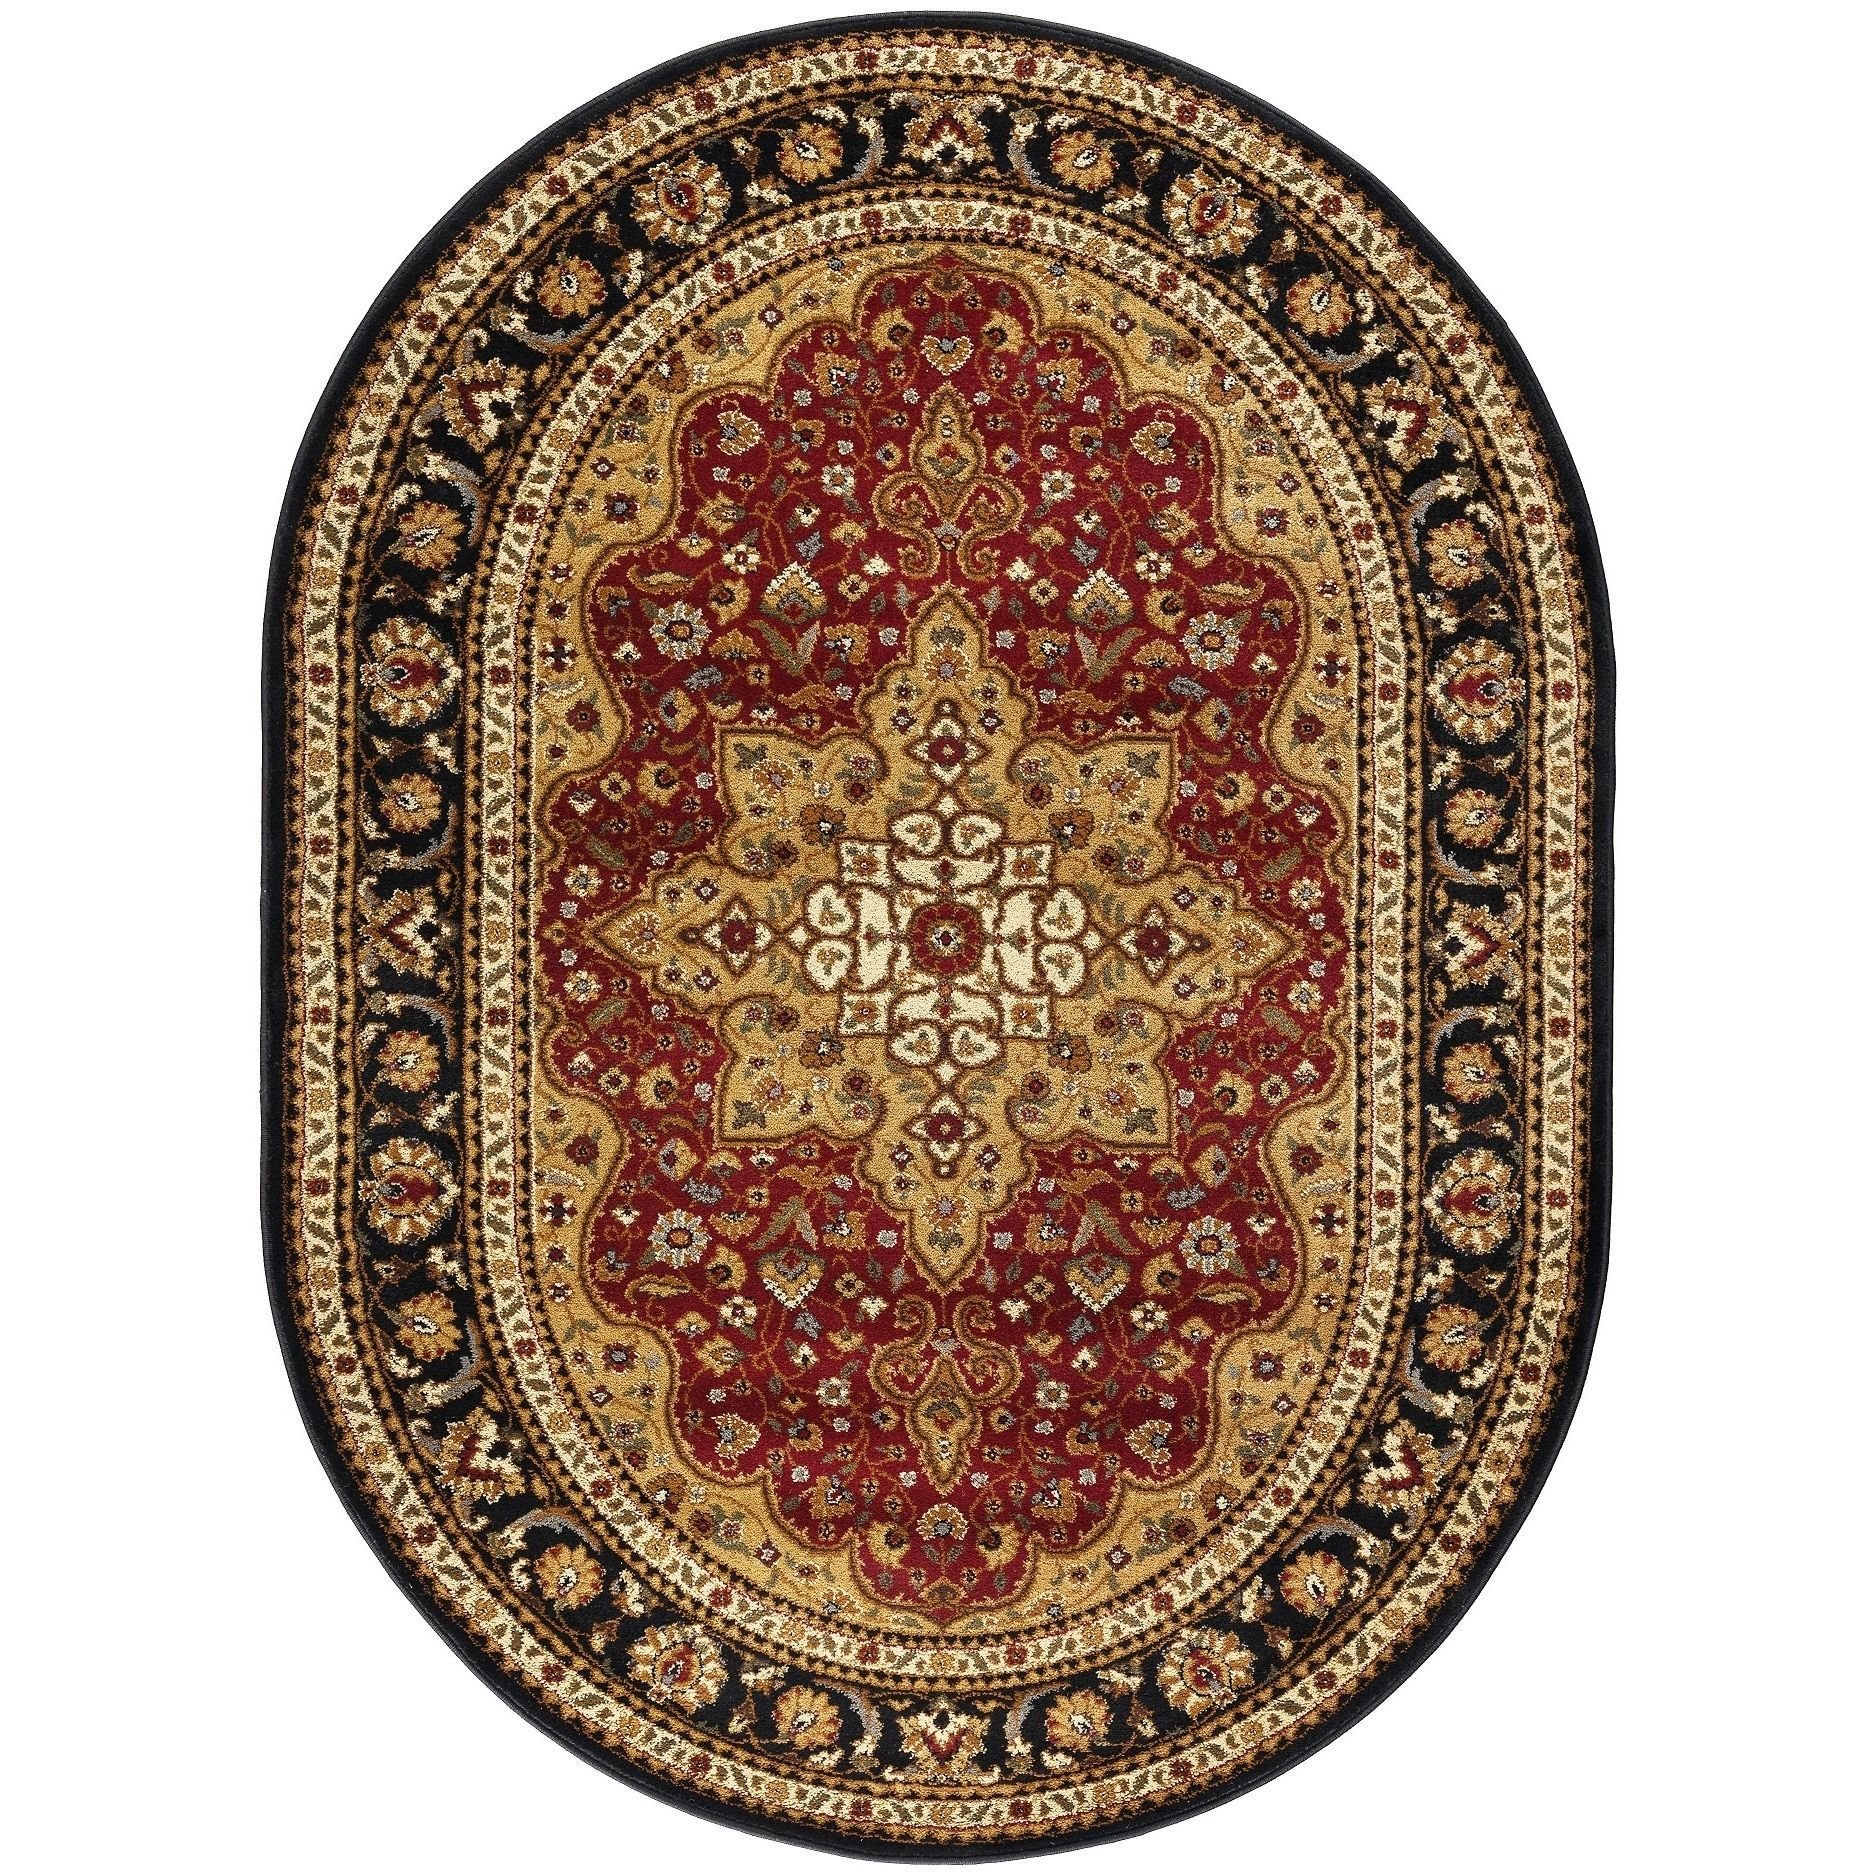 Alise Rugs Rhythm Oval Shaped Traditional Area Rug